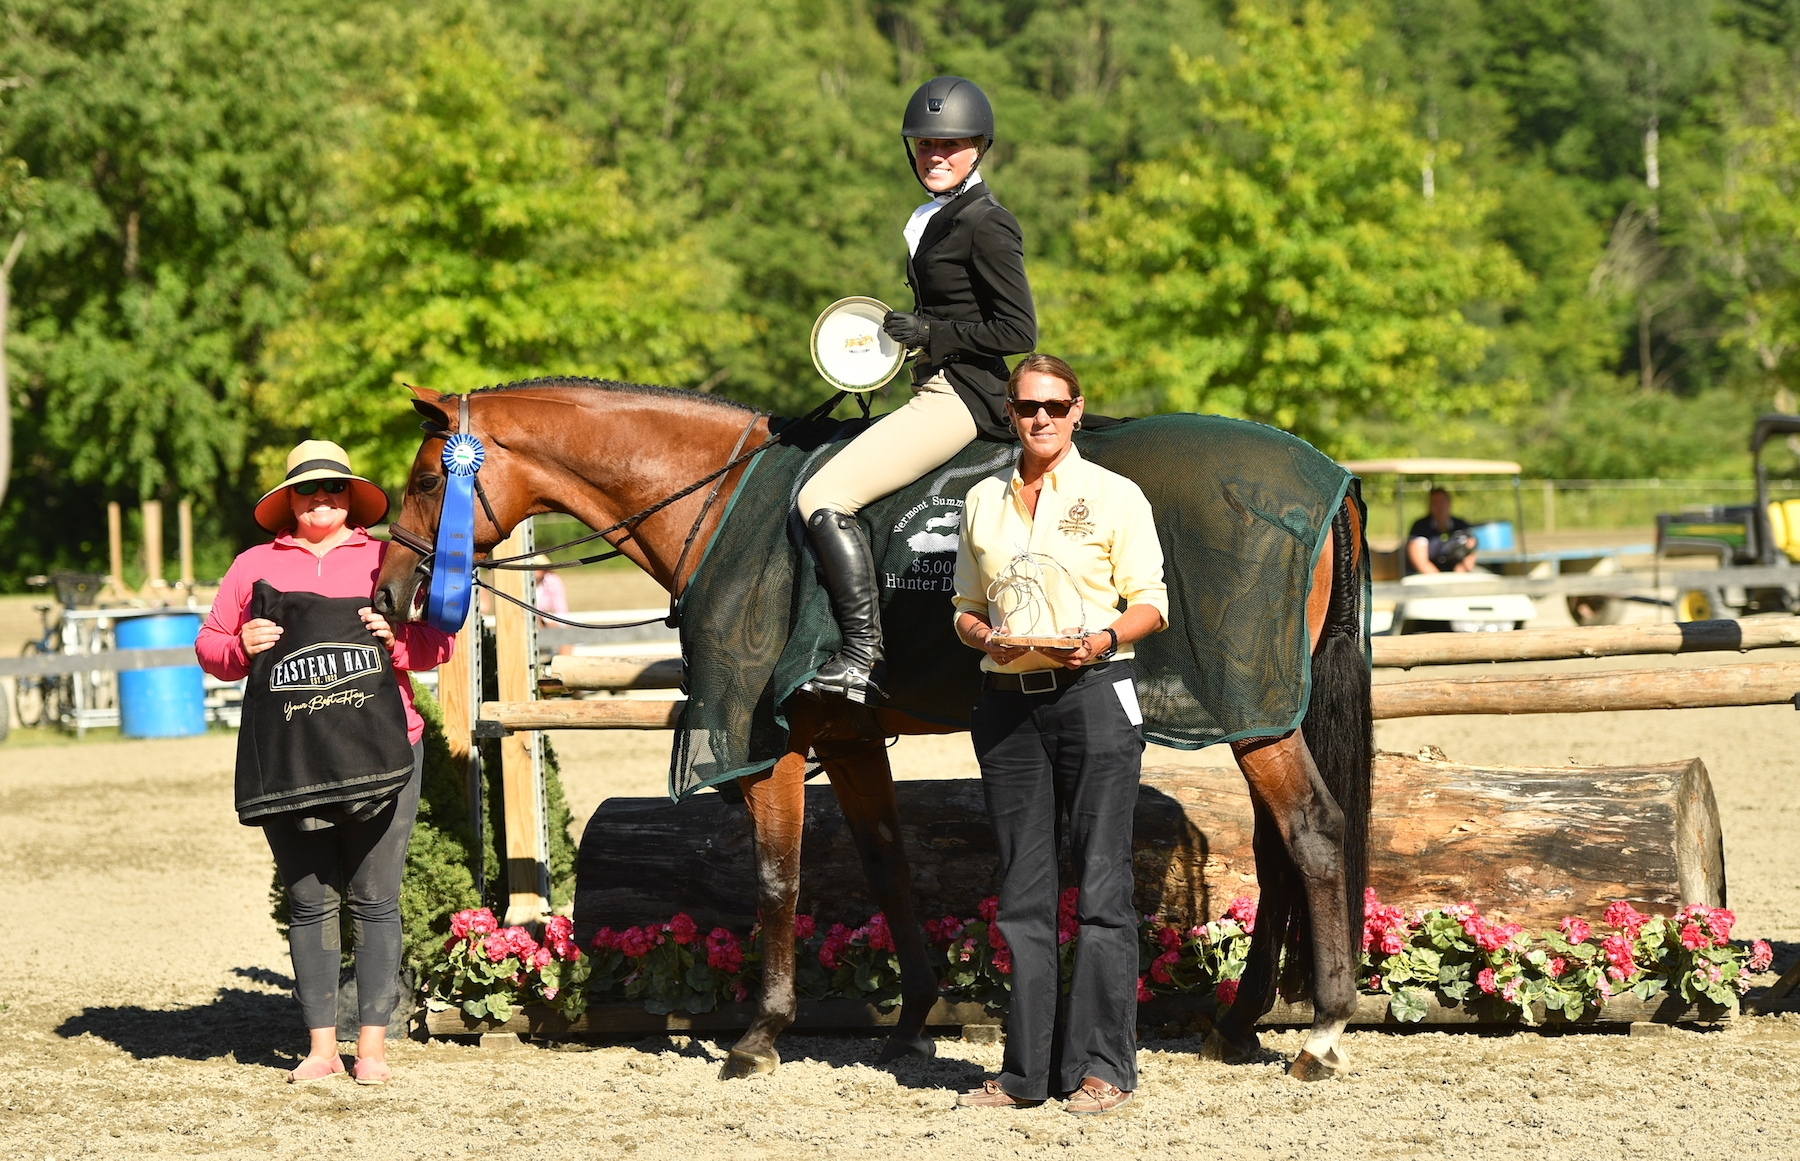 Katie McVeigh and Goyard, along with trainer Stephanie Demmon and Jennifer Glass of the Vermont Summer Festival, are presented as the winners of the $5,000 NEHJA Hunter Derby, presented by Eastern Hay, on Thursday, July 19, in East Dorset, VT.<br><b>Photo by <a href='http://www.andrewryback.com/' target='_blank'>Andrew Ryback Photography</a></b>